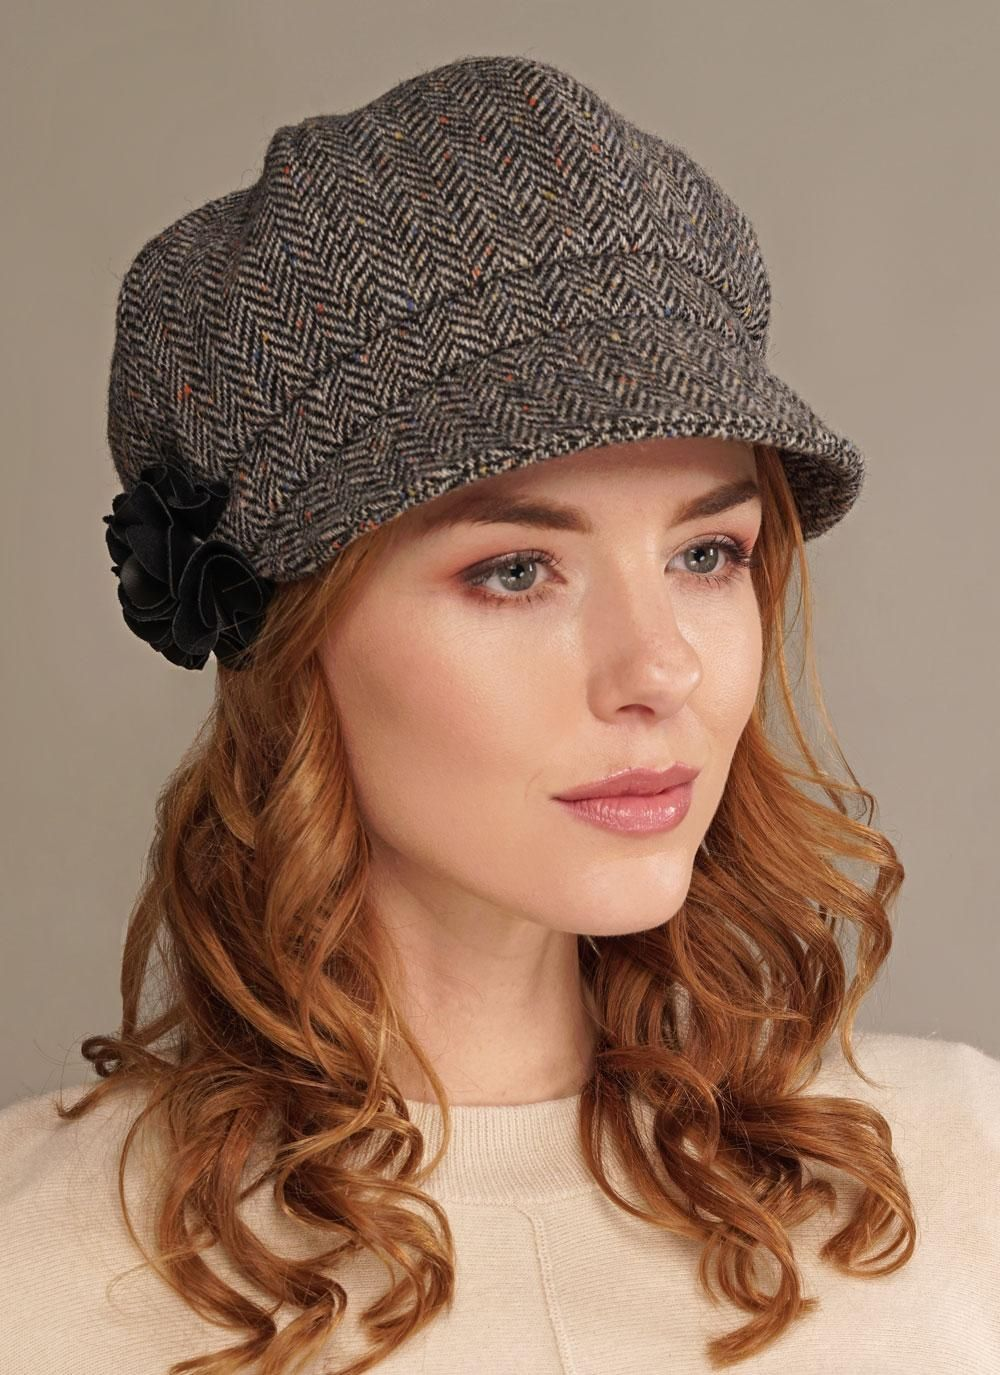 3d16ce03a84 Mucros Newsboy Hat  For over thirty years Mucros weavers have produced  quality woven accessories at their studio near Muckross House in Killarney.